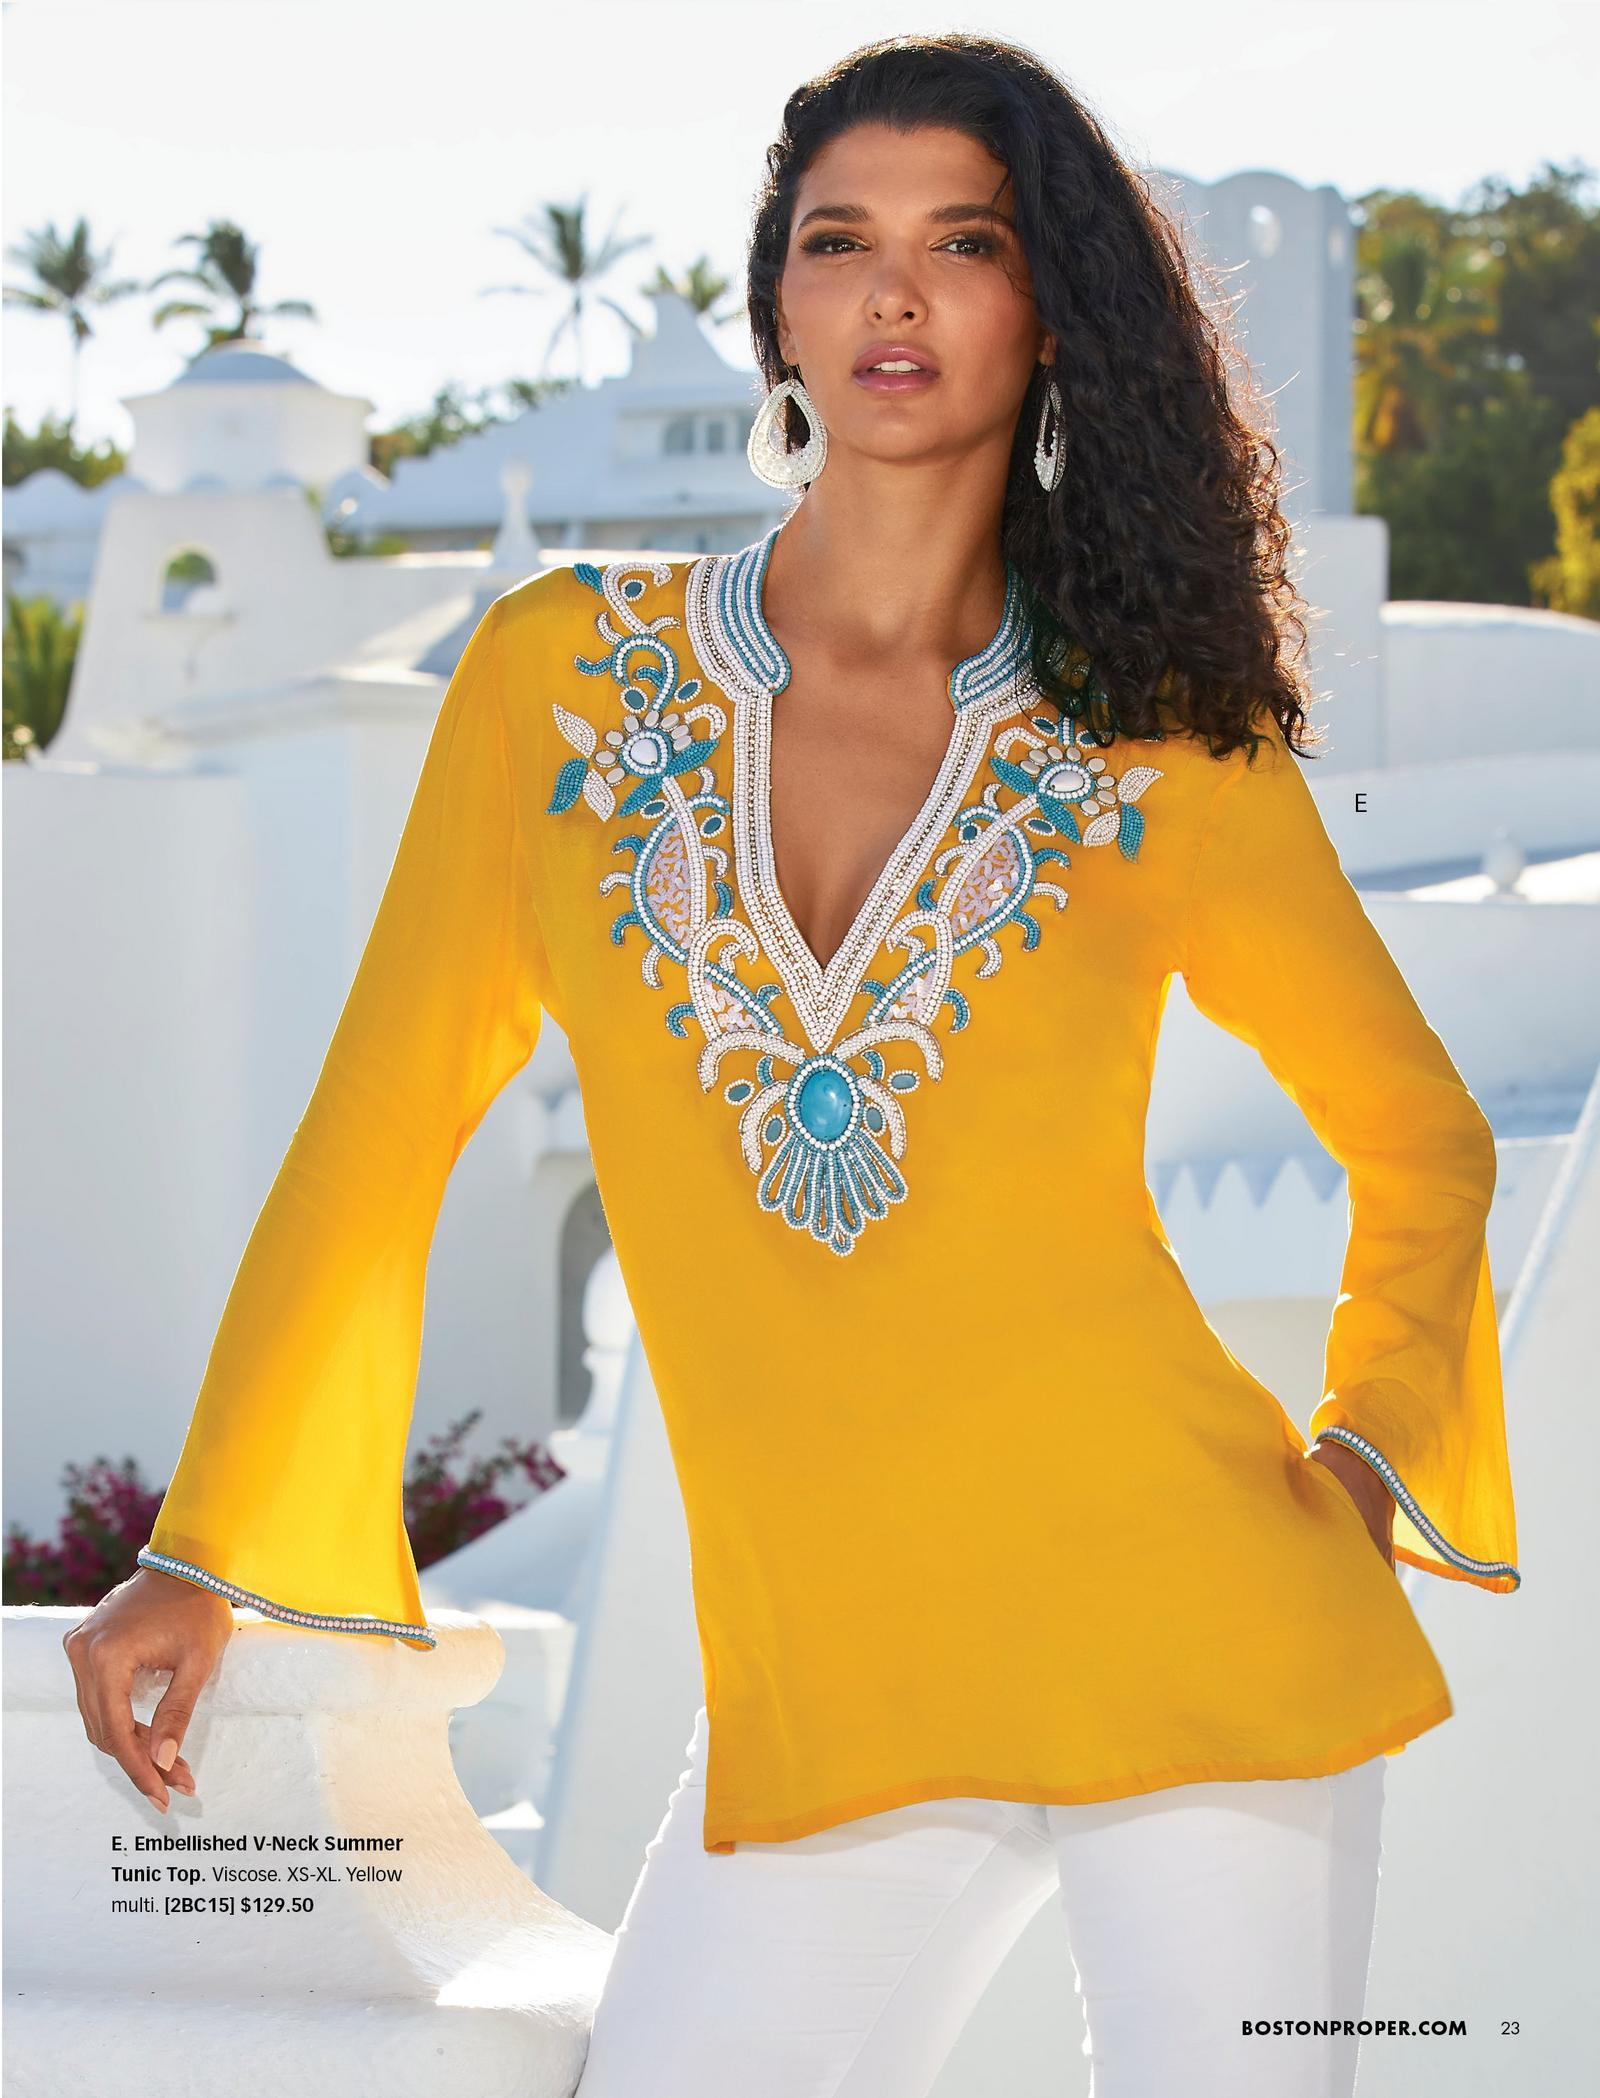 model wearing a yellow long-sleeve tunic with turquoise stone embellishments and white jeans.